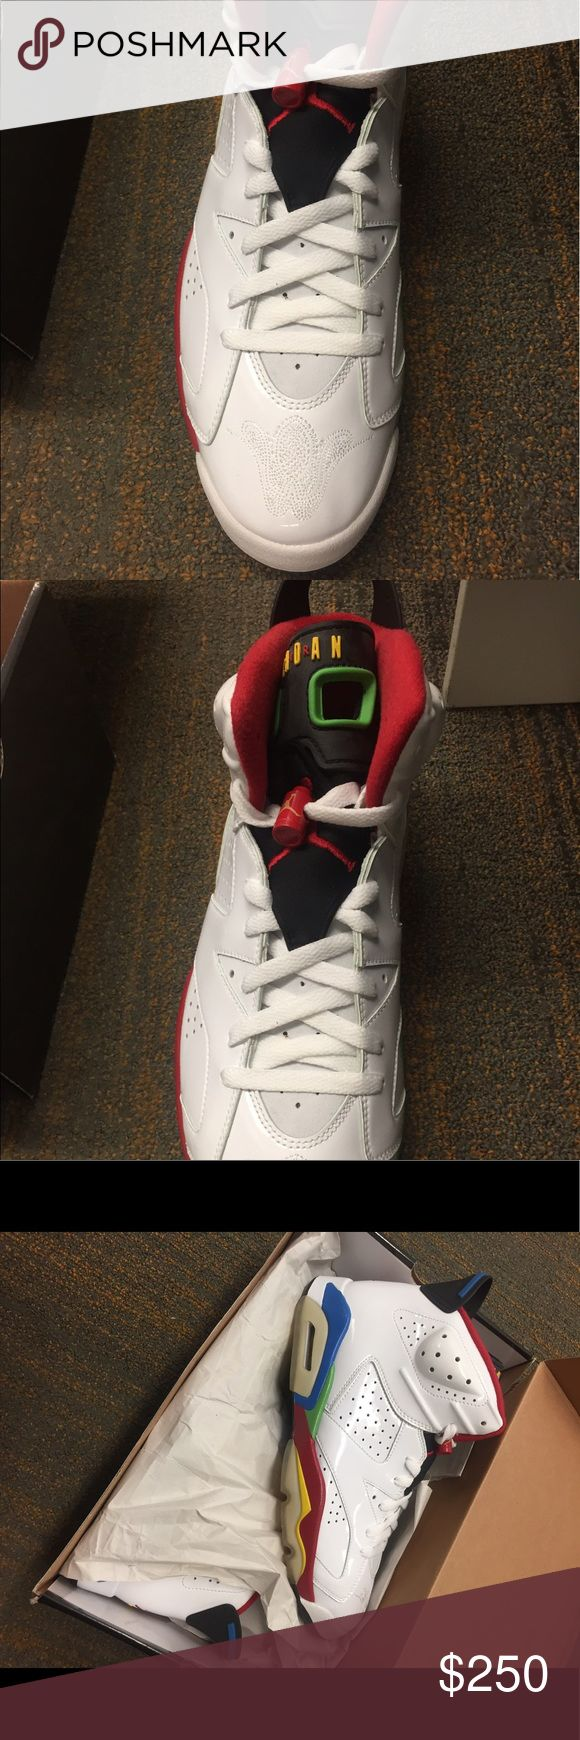 Jordan Olympic 6 white-varsity red-grn-bl Sold in 2008. Never worn. New in box. Size 10.5. Jordan Shoes Athletic Shoes